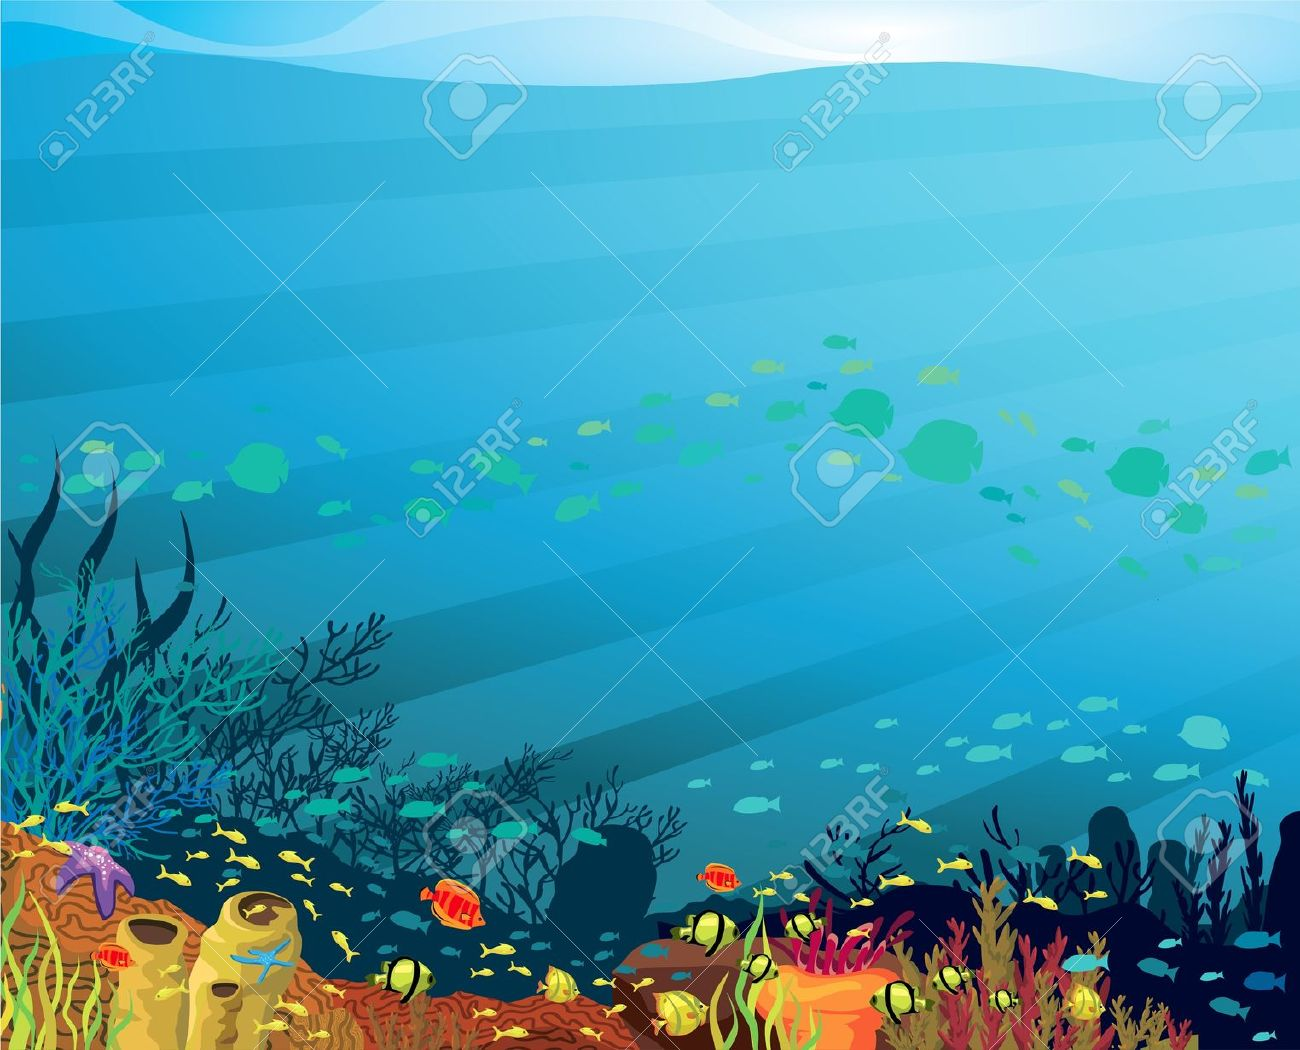 Background clipart coral reef Art Clip background Clip clipart